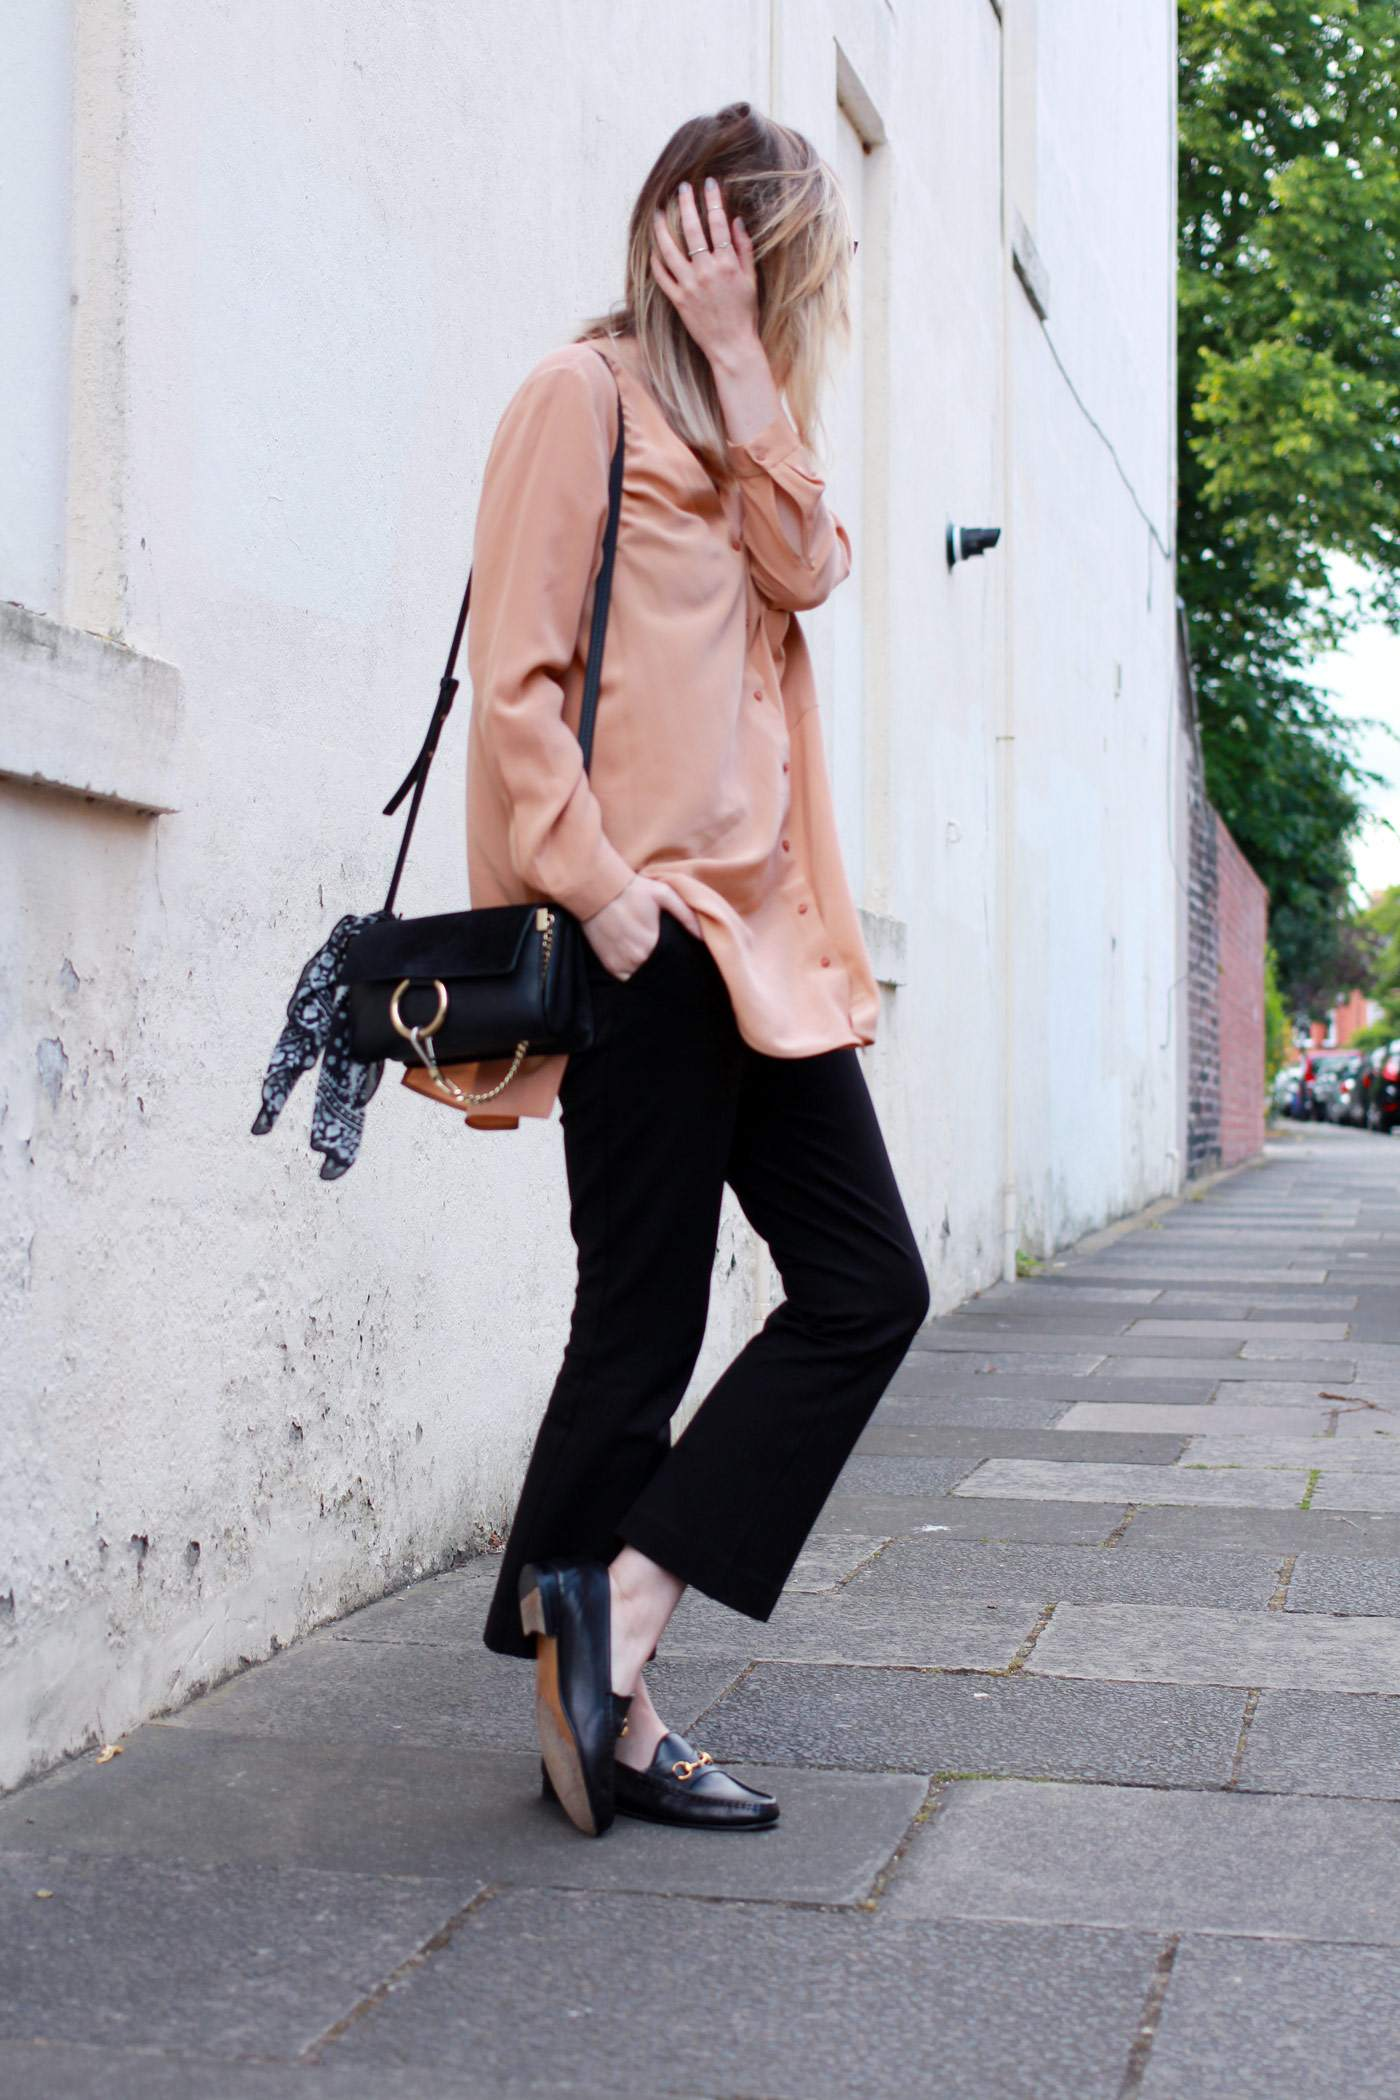 Boden-flared-trousers-COS-peach-shirt-Chloe-faye-bag-black-gucci-loafers-4